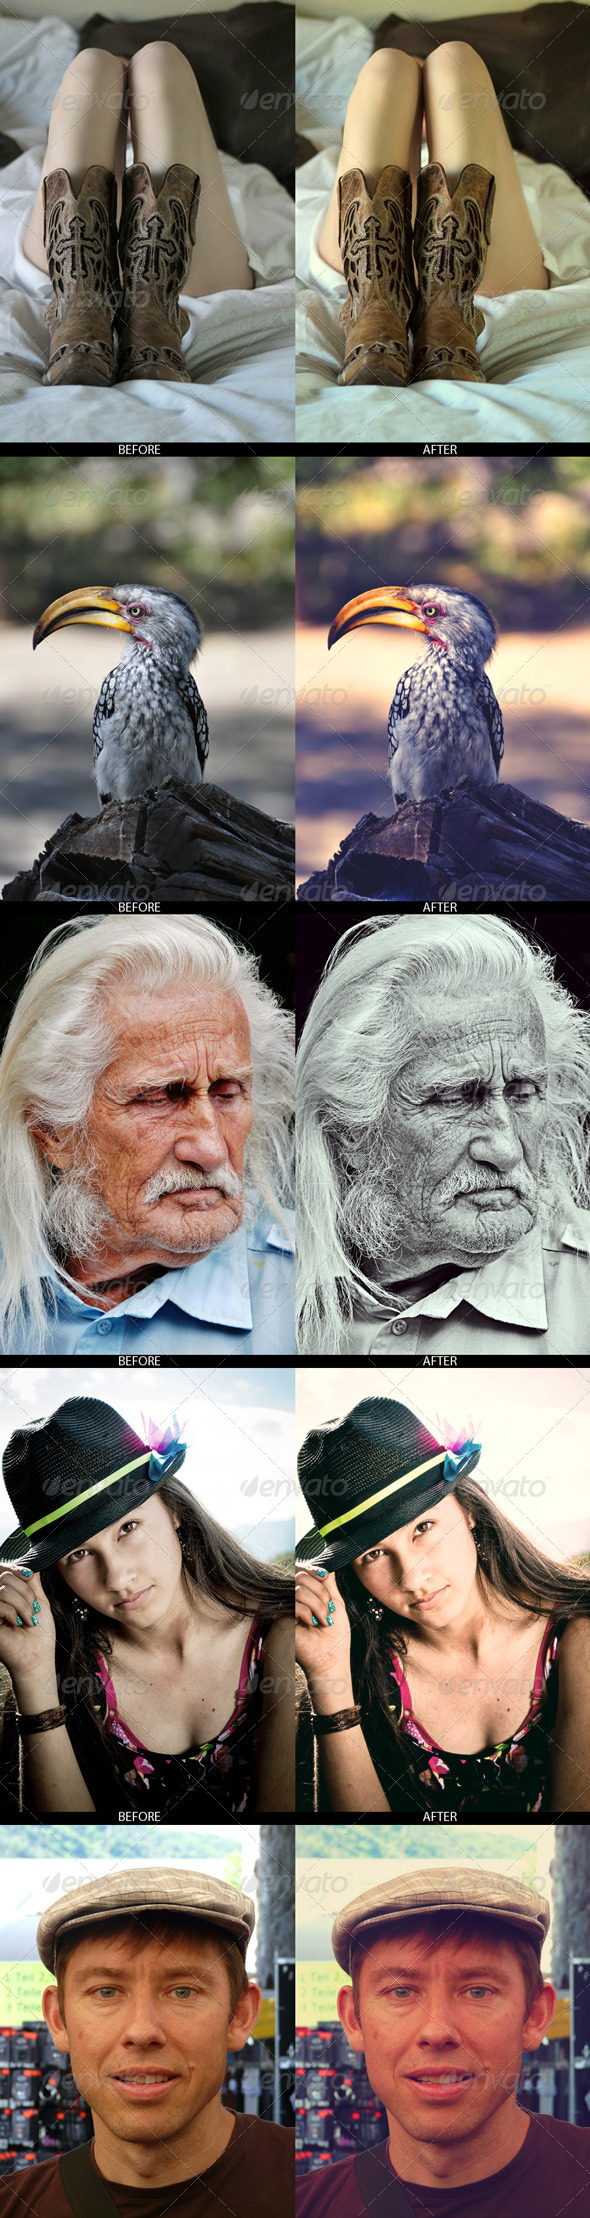 GraphicRiver 5x Professional Photo Effects 7135574